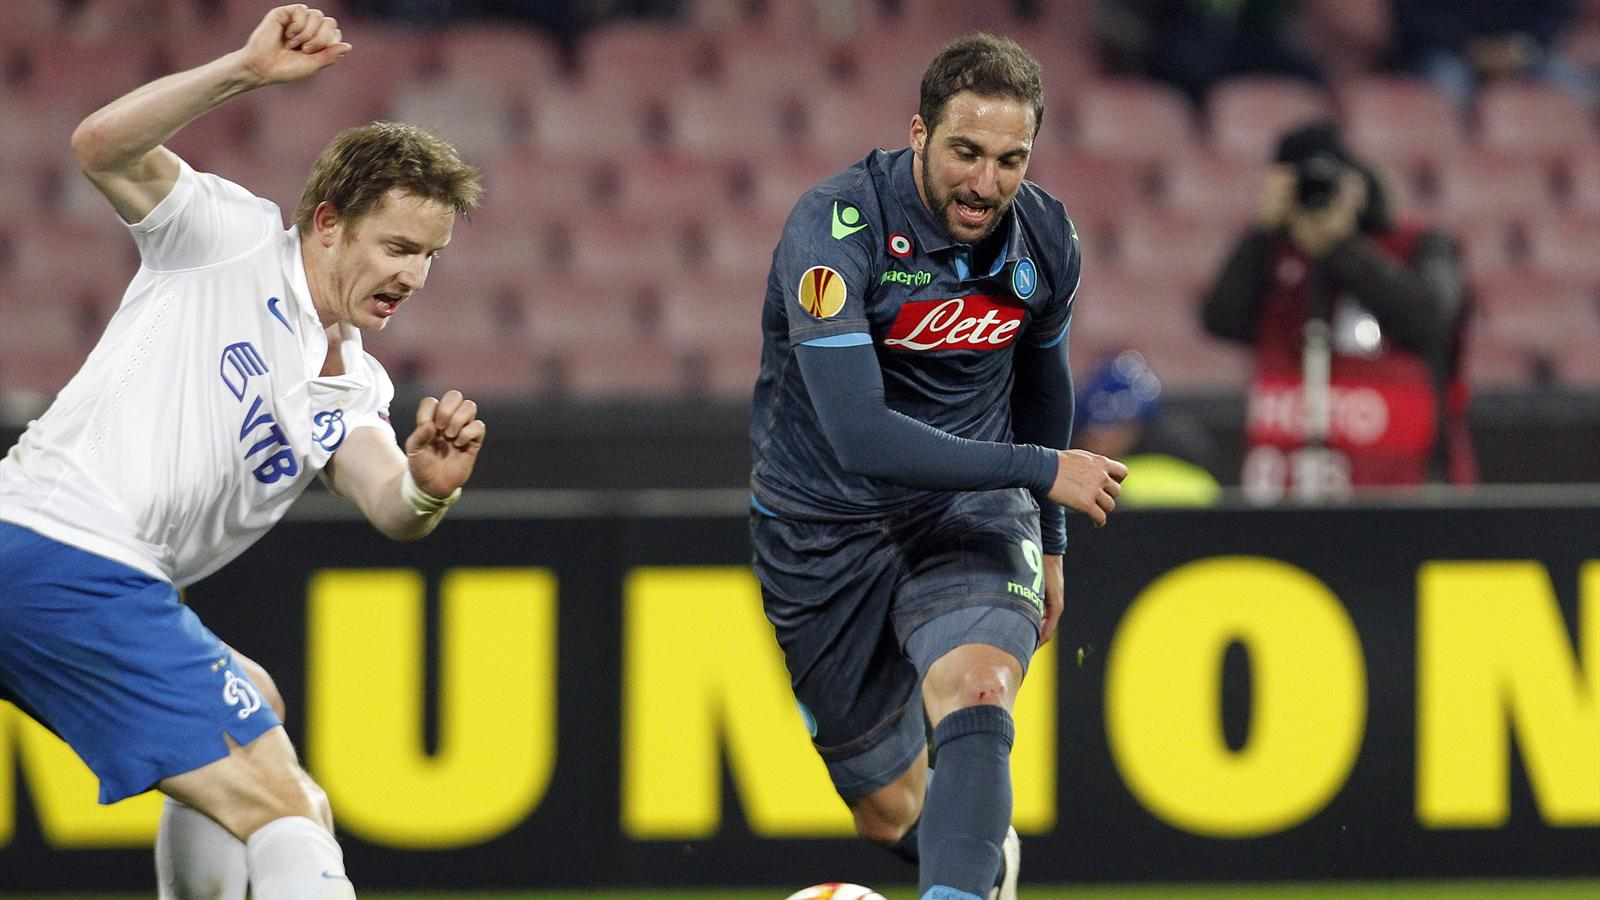 Napoli's Gonzalo Higuain (R) challenges Tomas Hubocan (L) of Dynamo Moscow during their Europa League round of 16 first leg soccer match at the San Paolo stadium in Naples March 12, 2015. Napoli won 3-1 (Reuters)